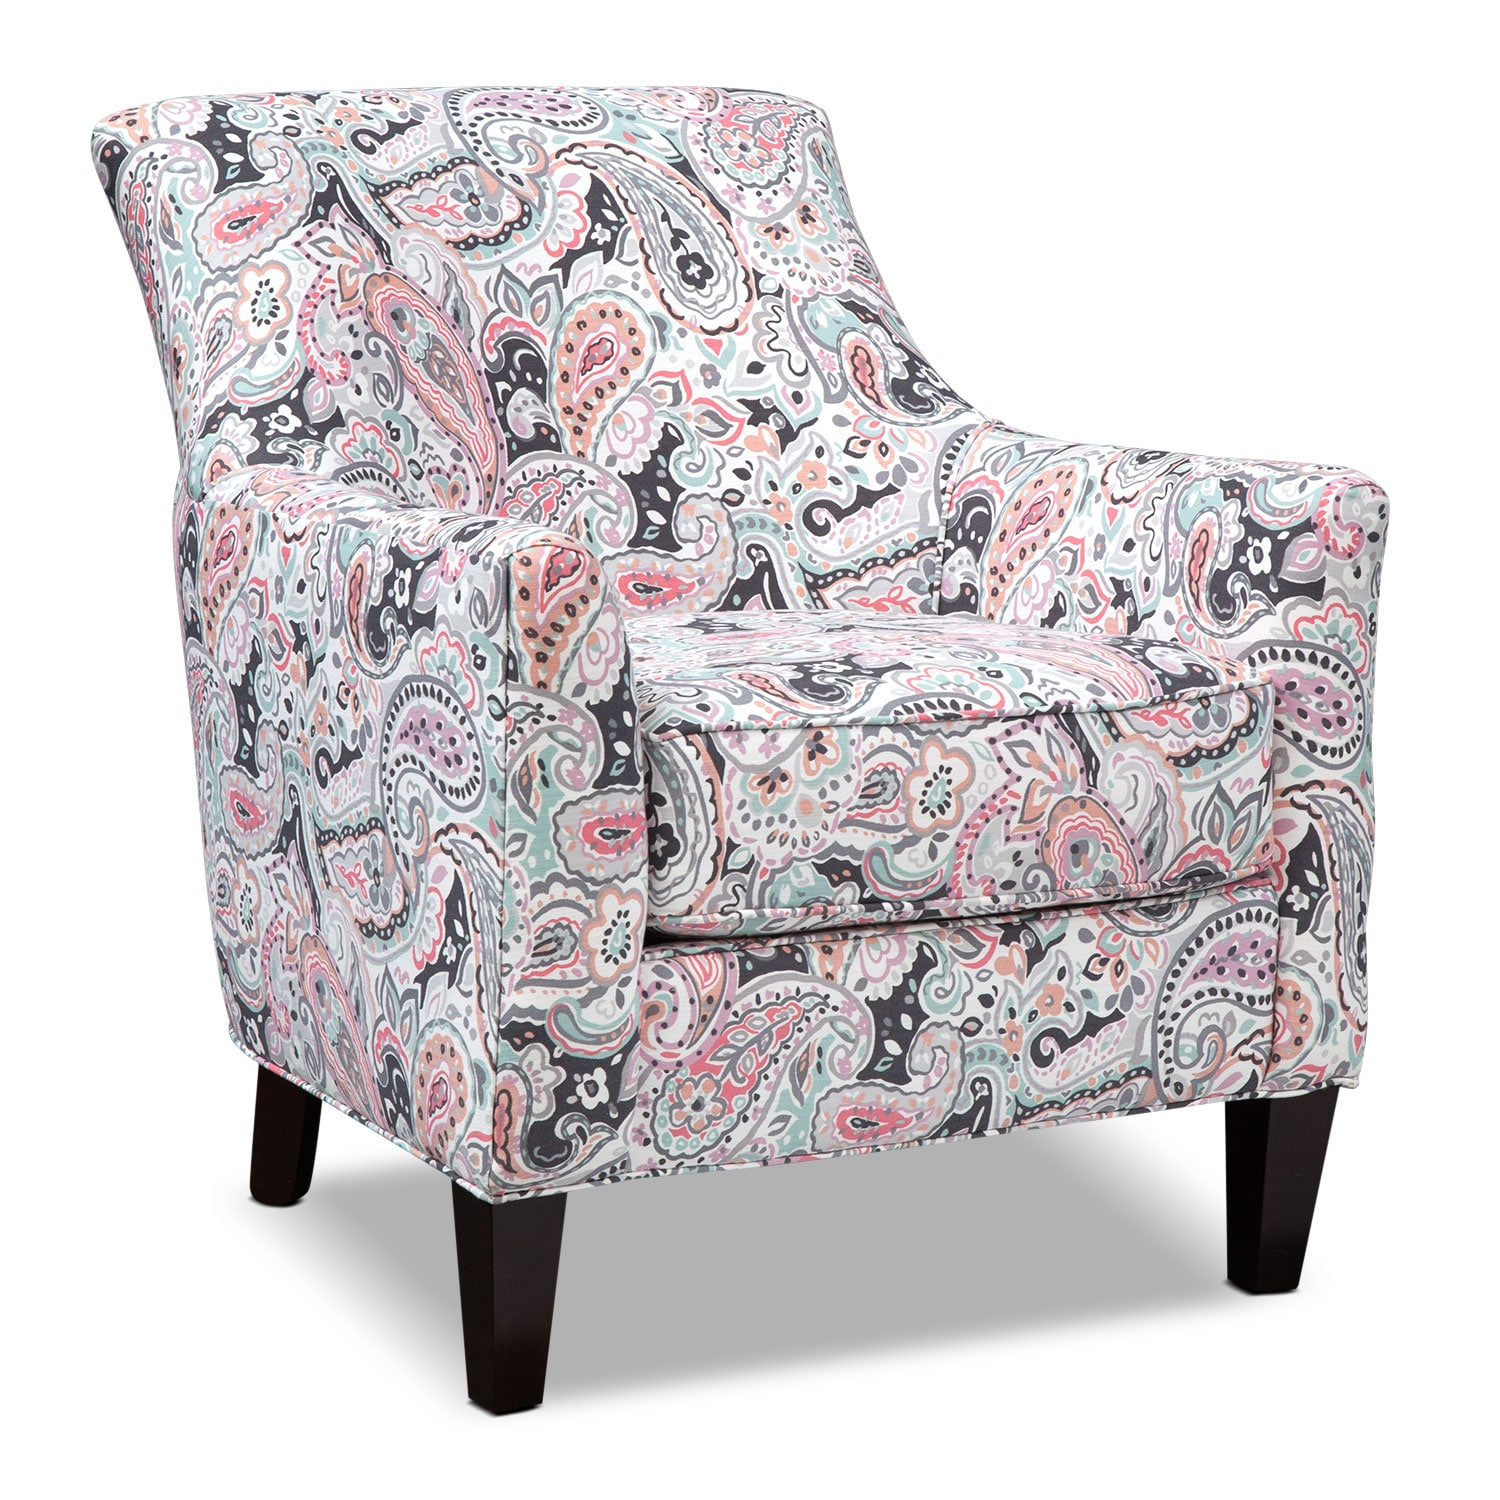 Bedroom Furniture - Rachel Esparanza Accent Chair - Granite